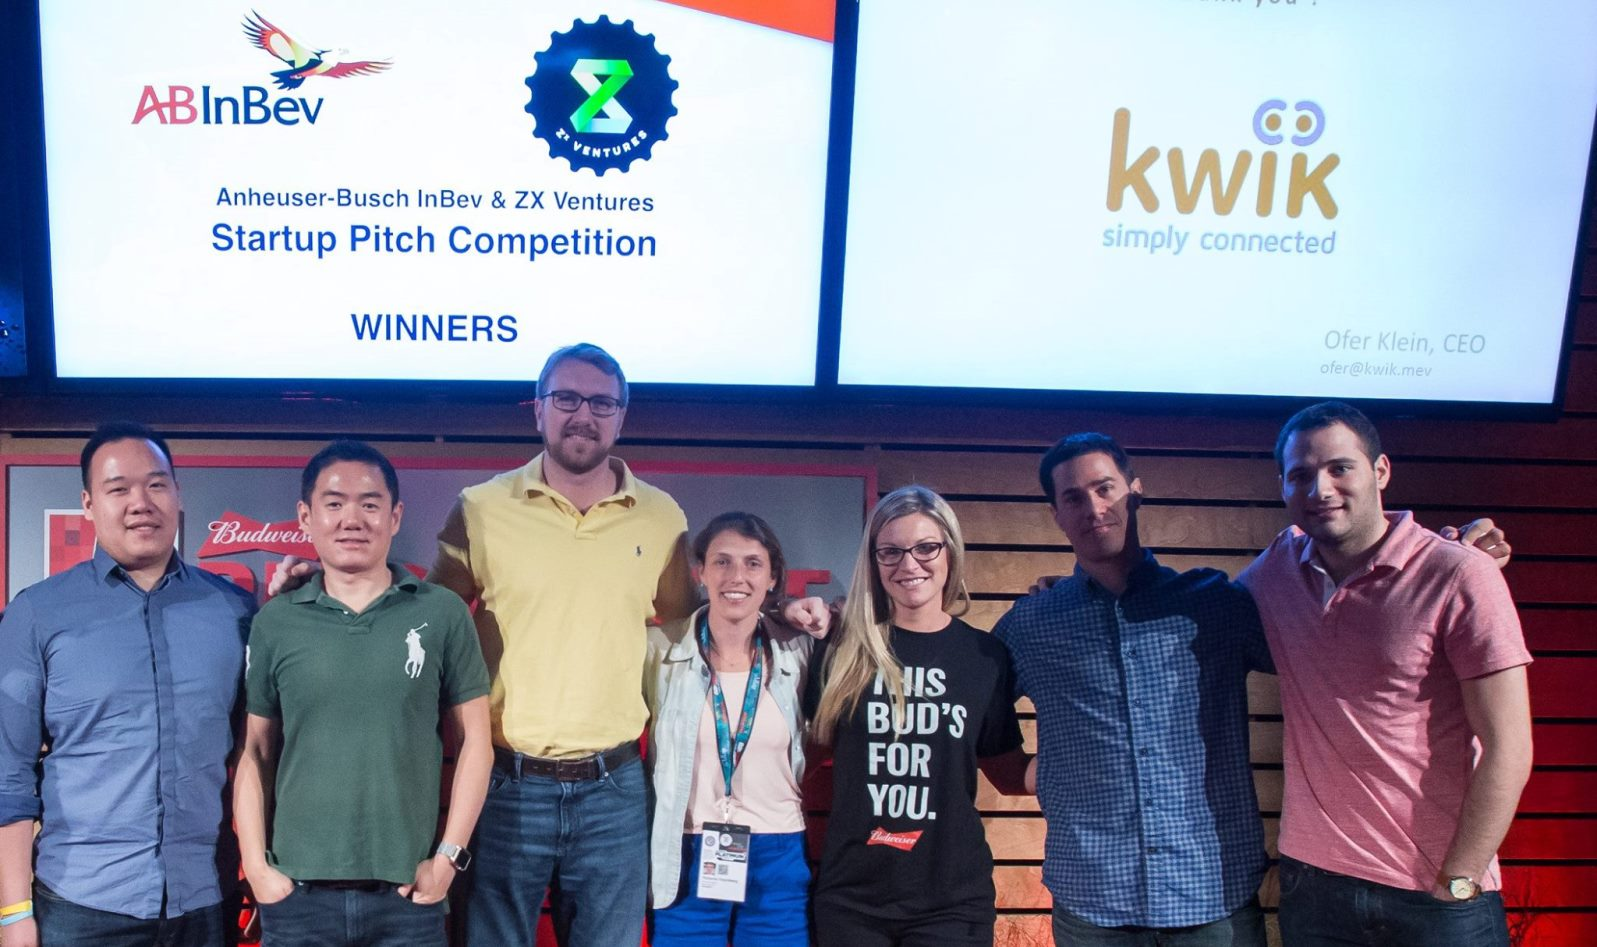 Kwik was a finalist at the 2016 ABInBev startup competition. Photo via Facebook